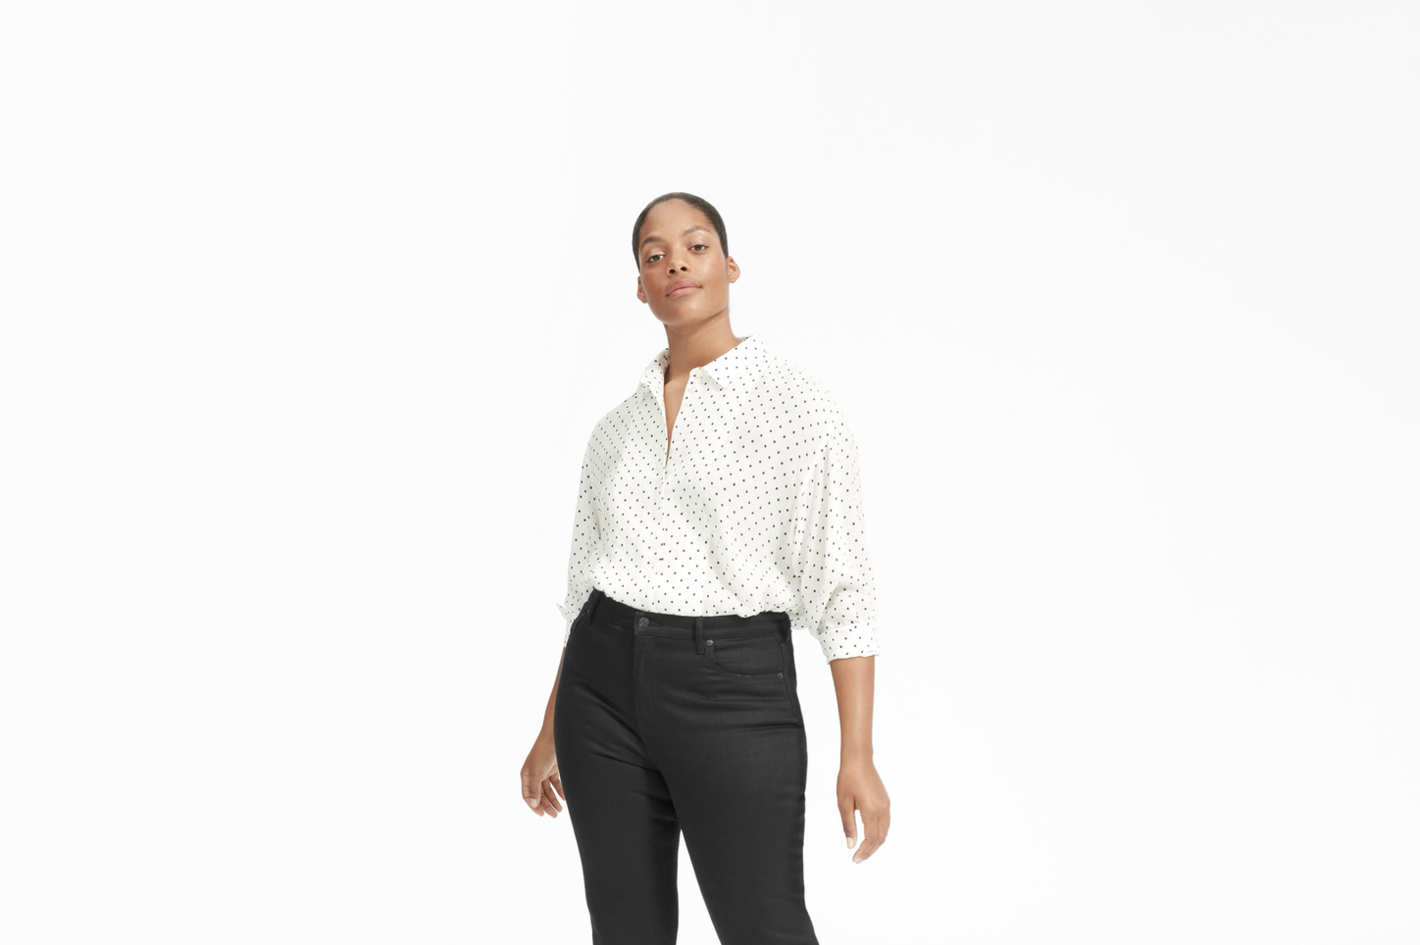 The Polka Dot Oversized Shirt